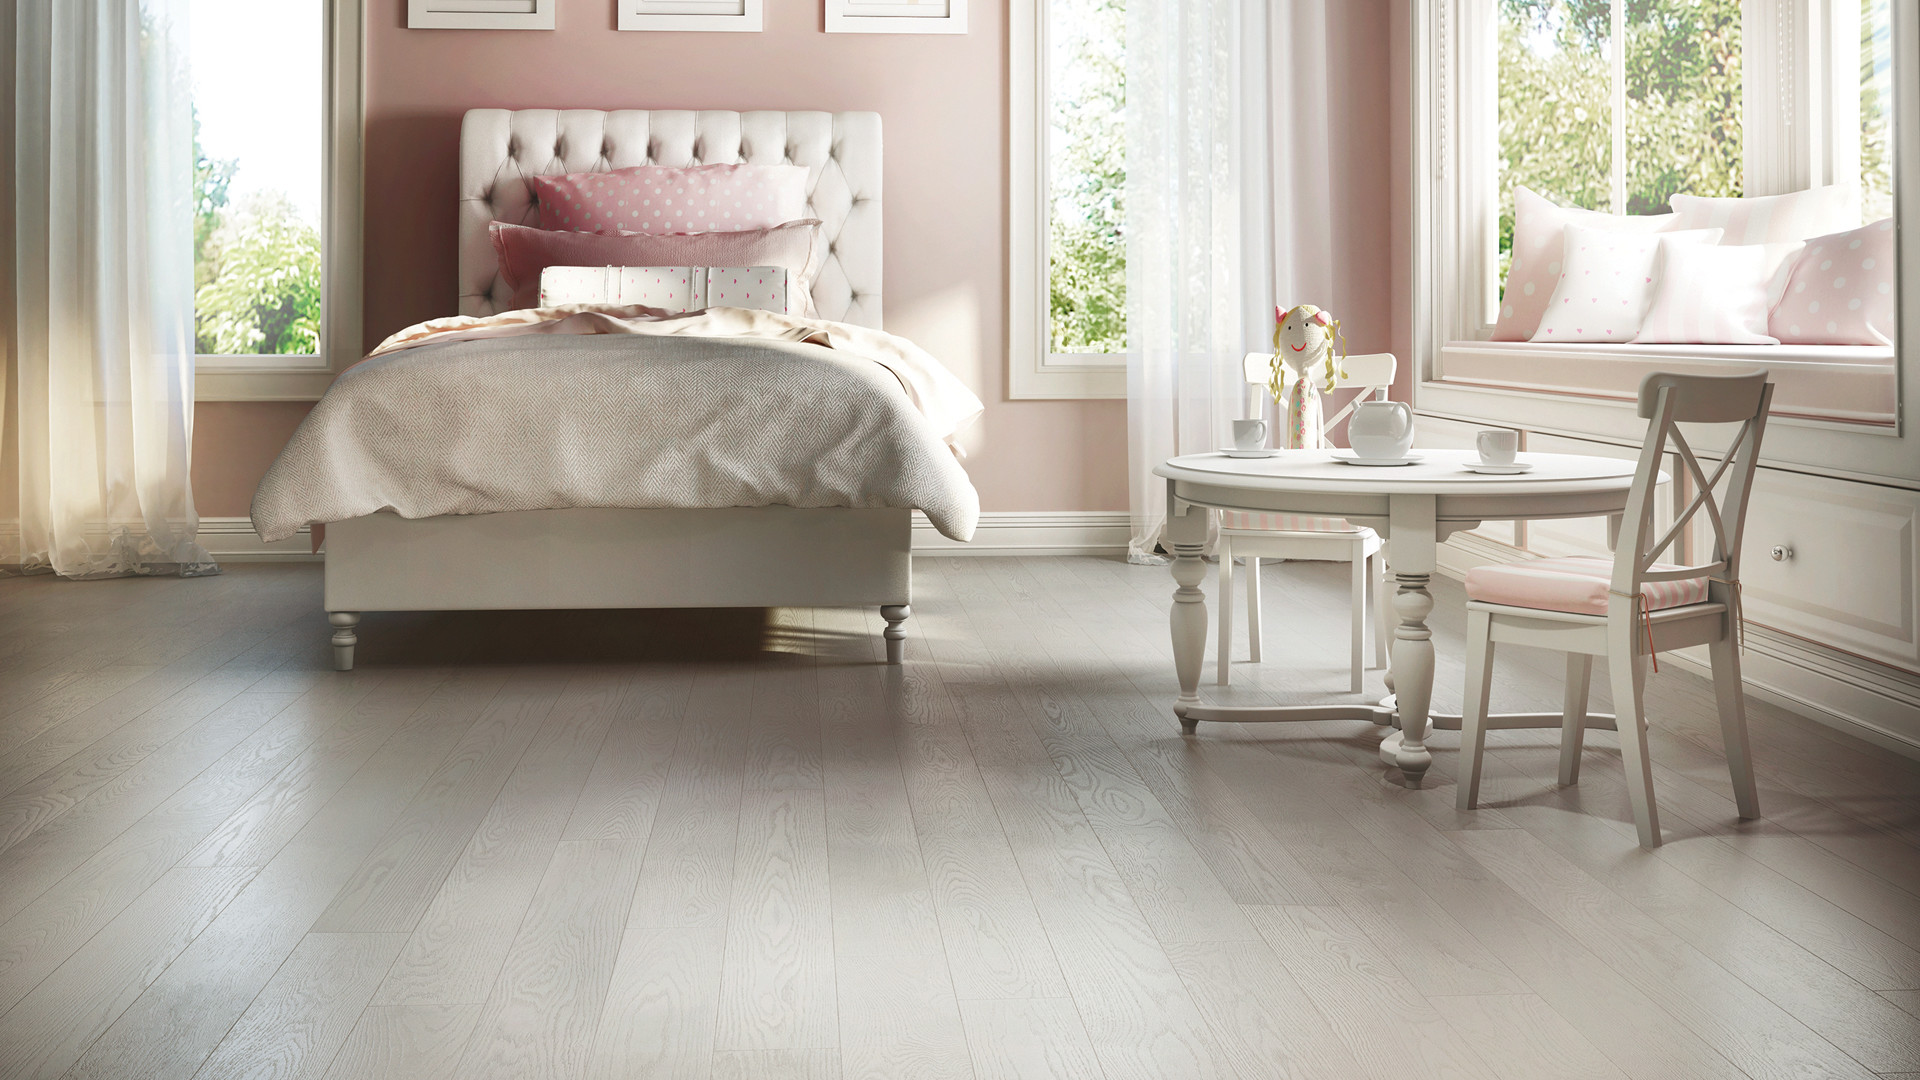 maple hardwood flooring toronto of 4 latest hardwood flooring trends of 2018 lauzon flooring inside new colors in the urban loft series